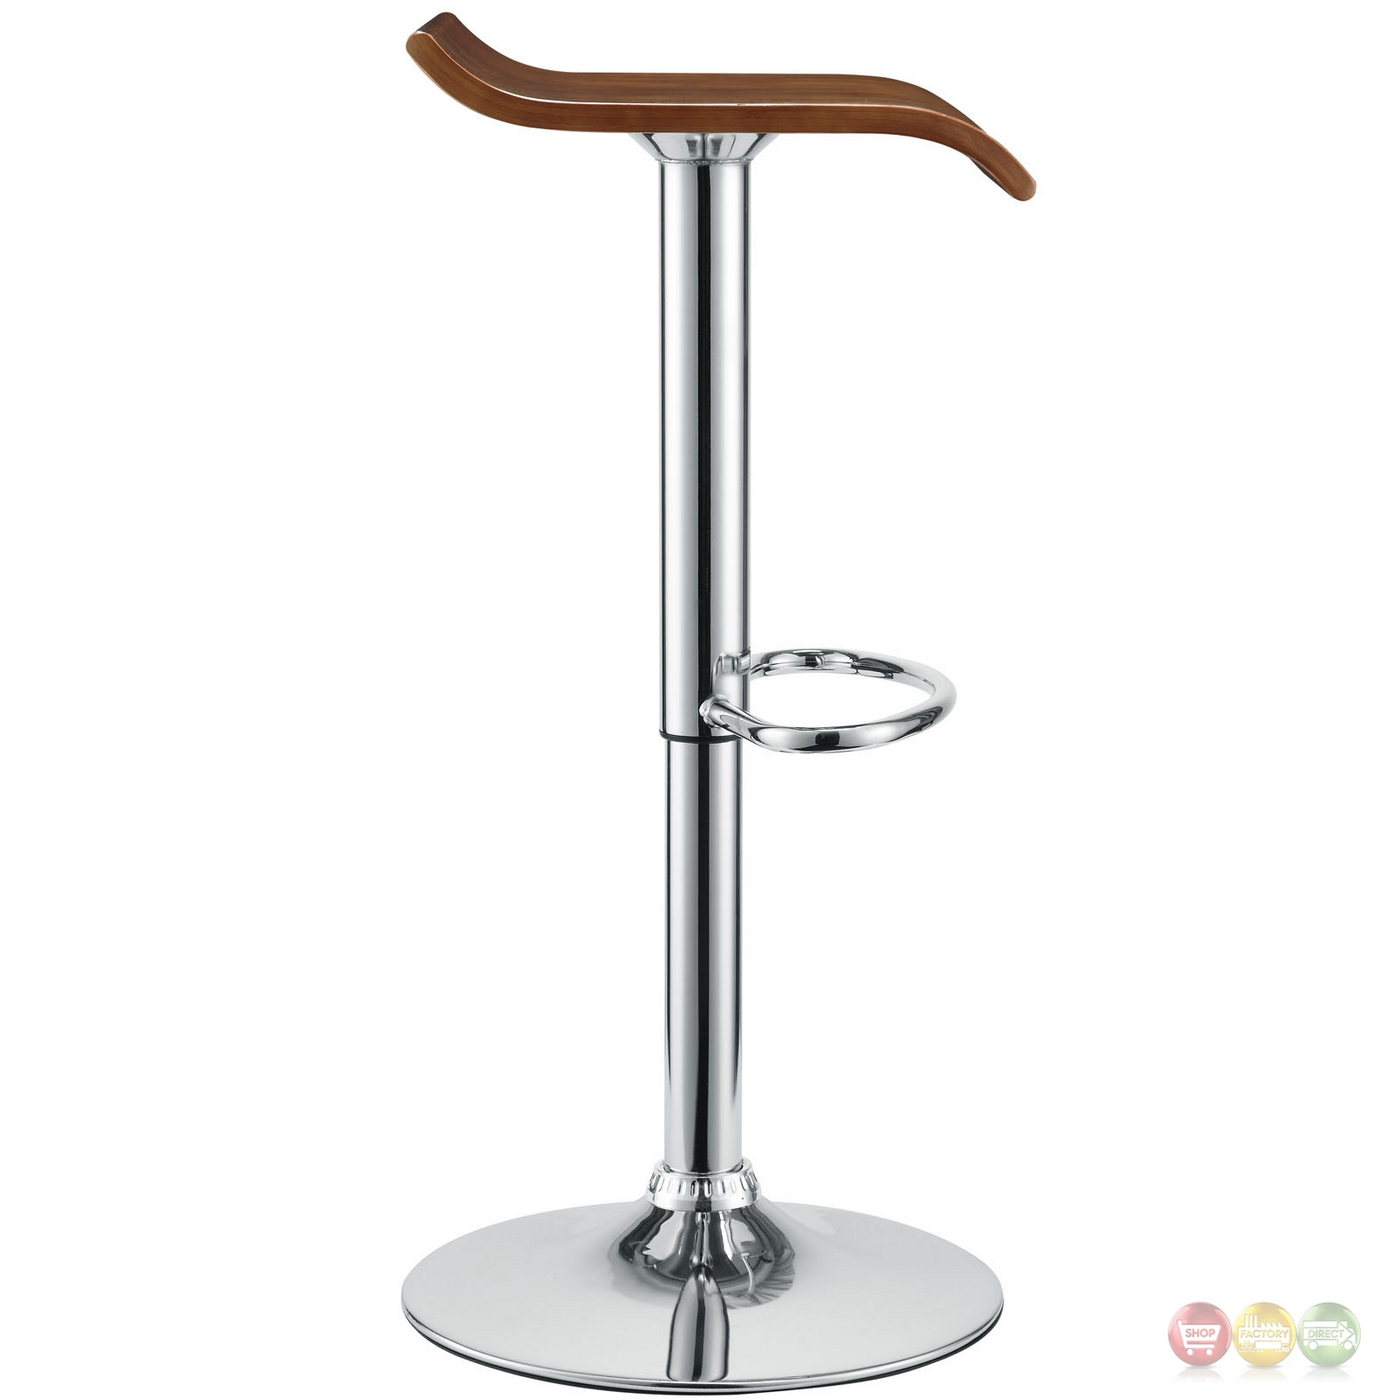 Modern Wood Bar Stool Bentwood Modern Wooden Seat Bar Stool W Chrome Base And Foot